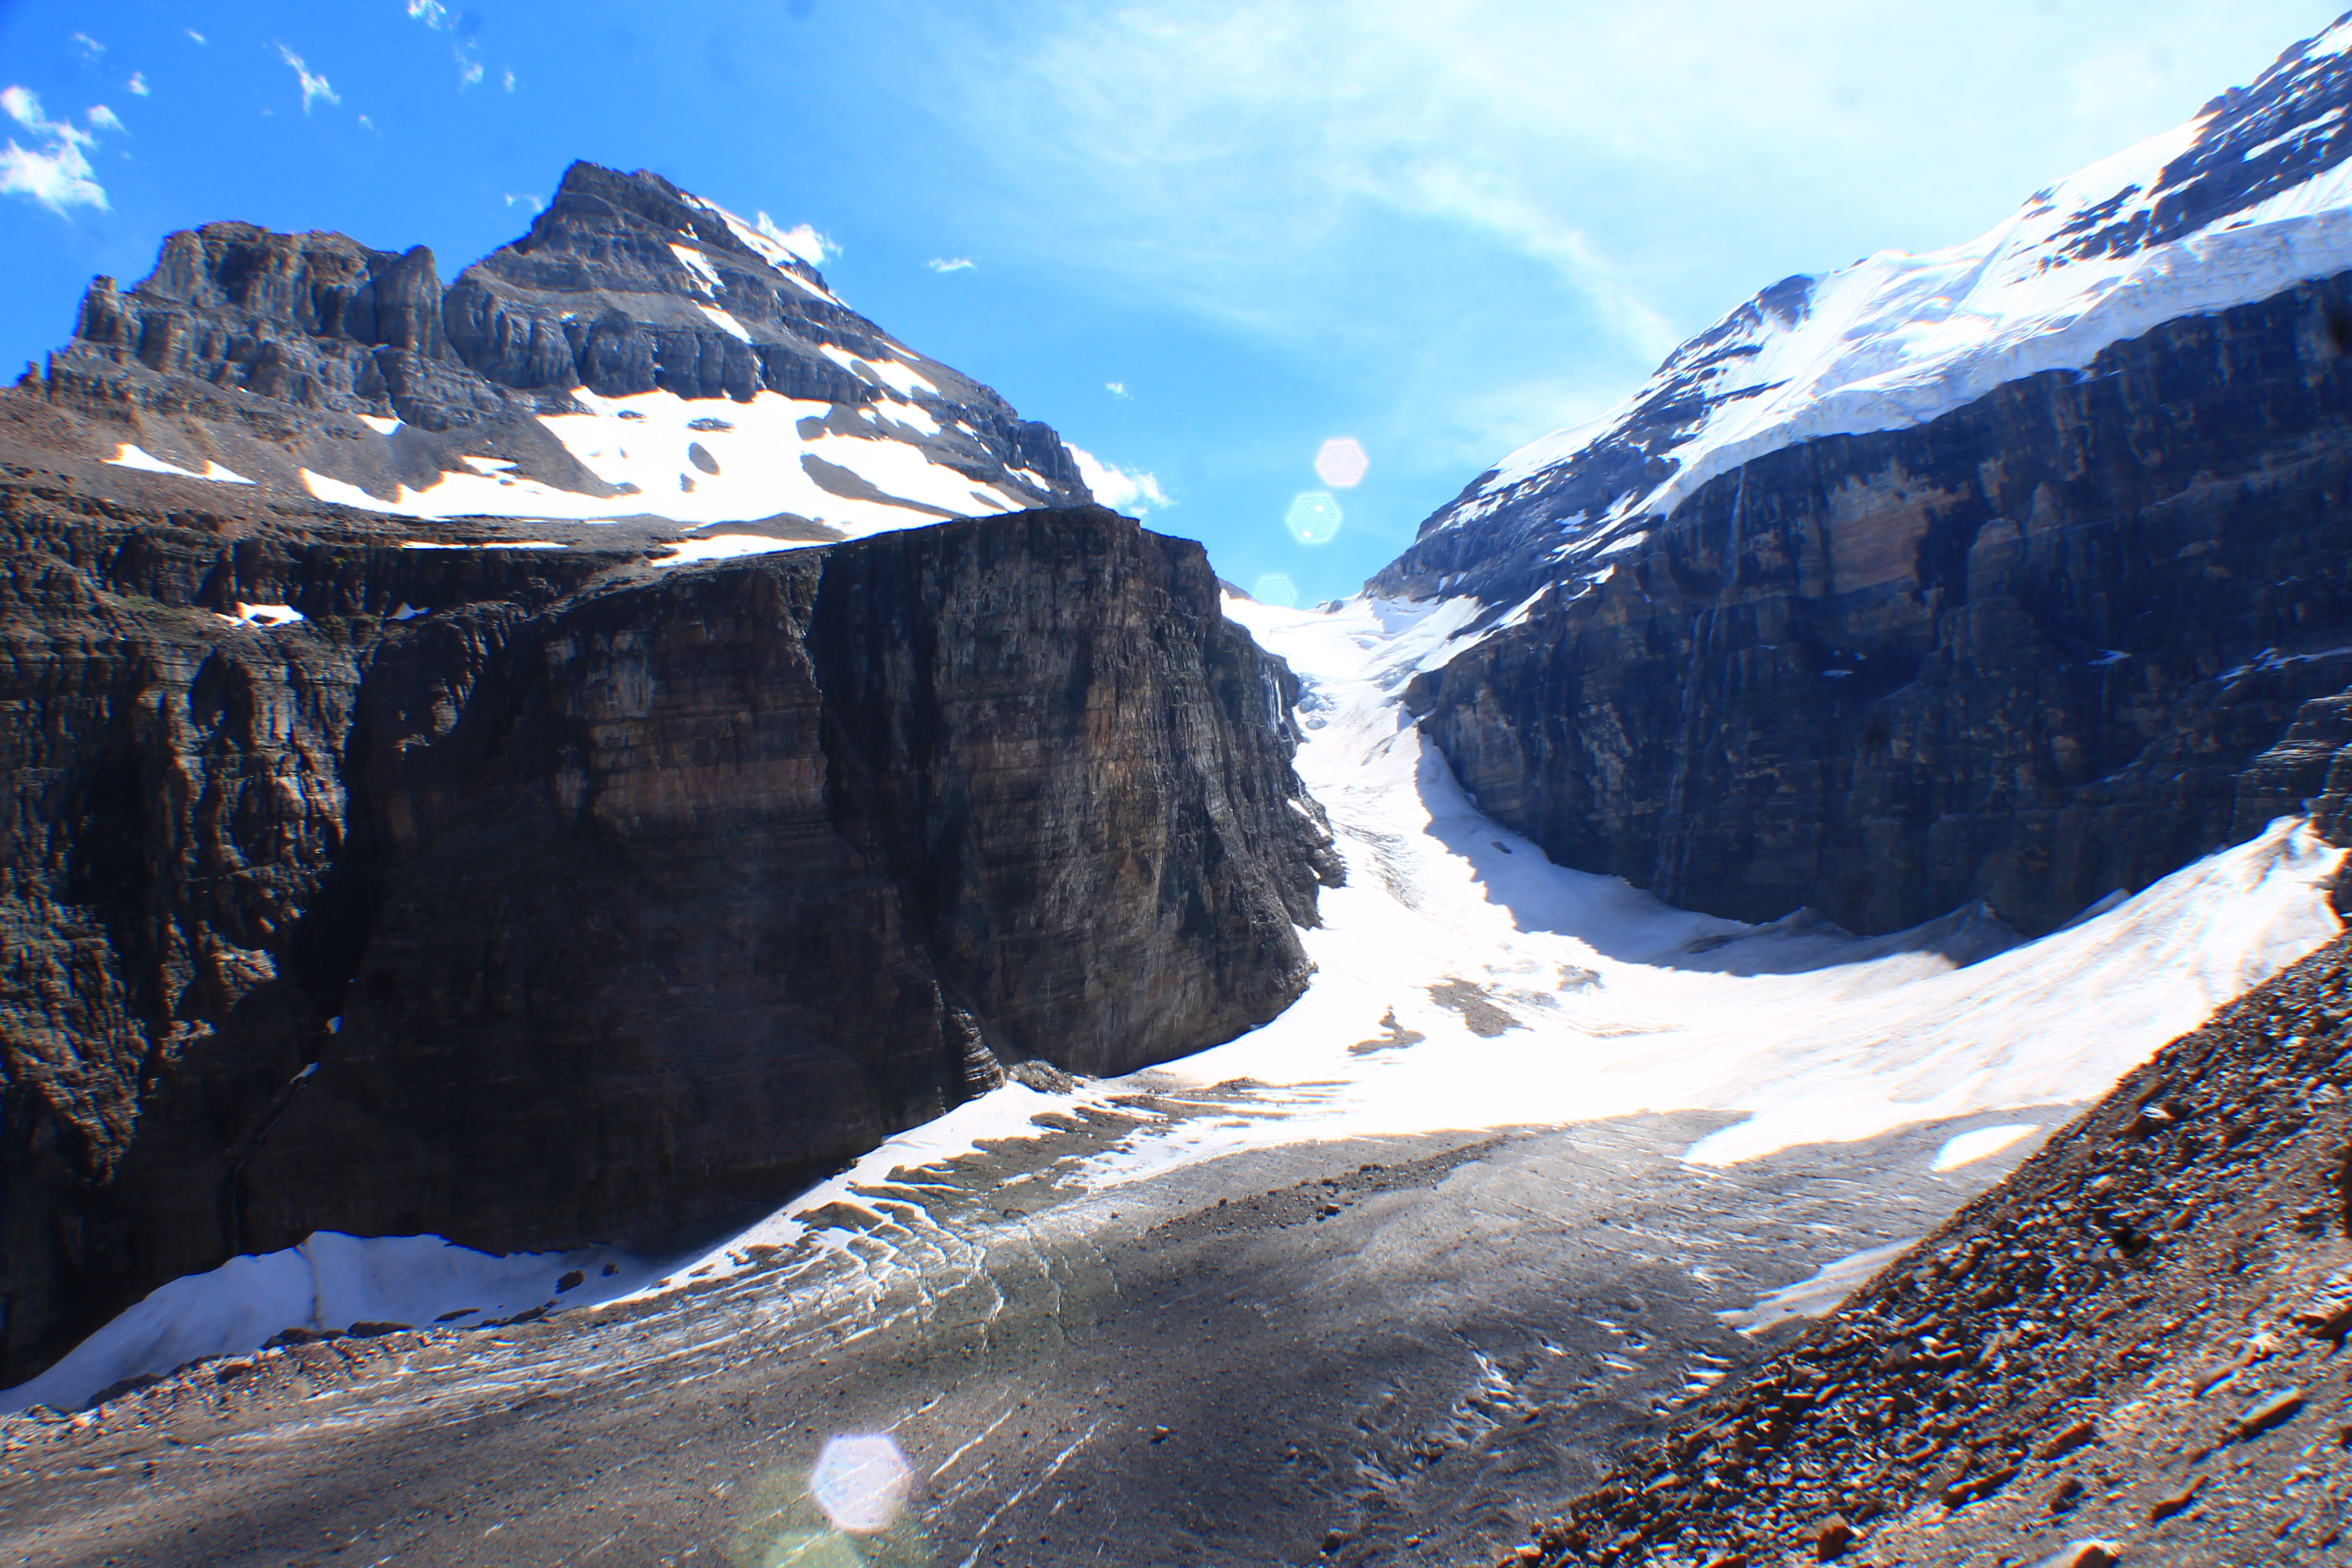 Hiking to Plain of Six Glaciers, Adventurers Day Hiking Guide Lake Louise